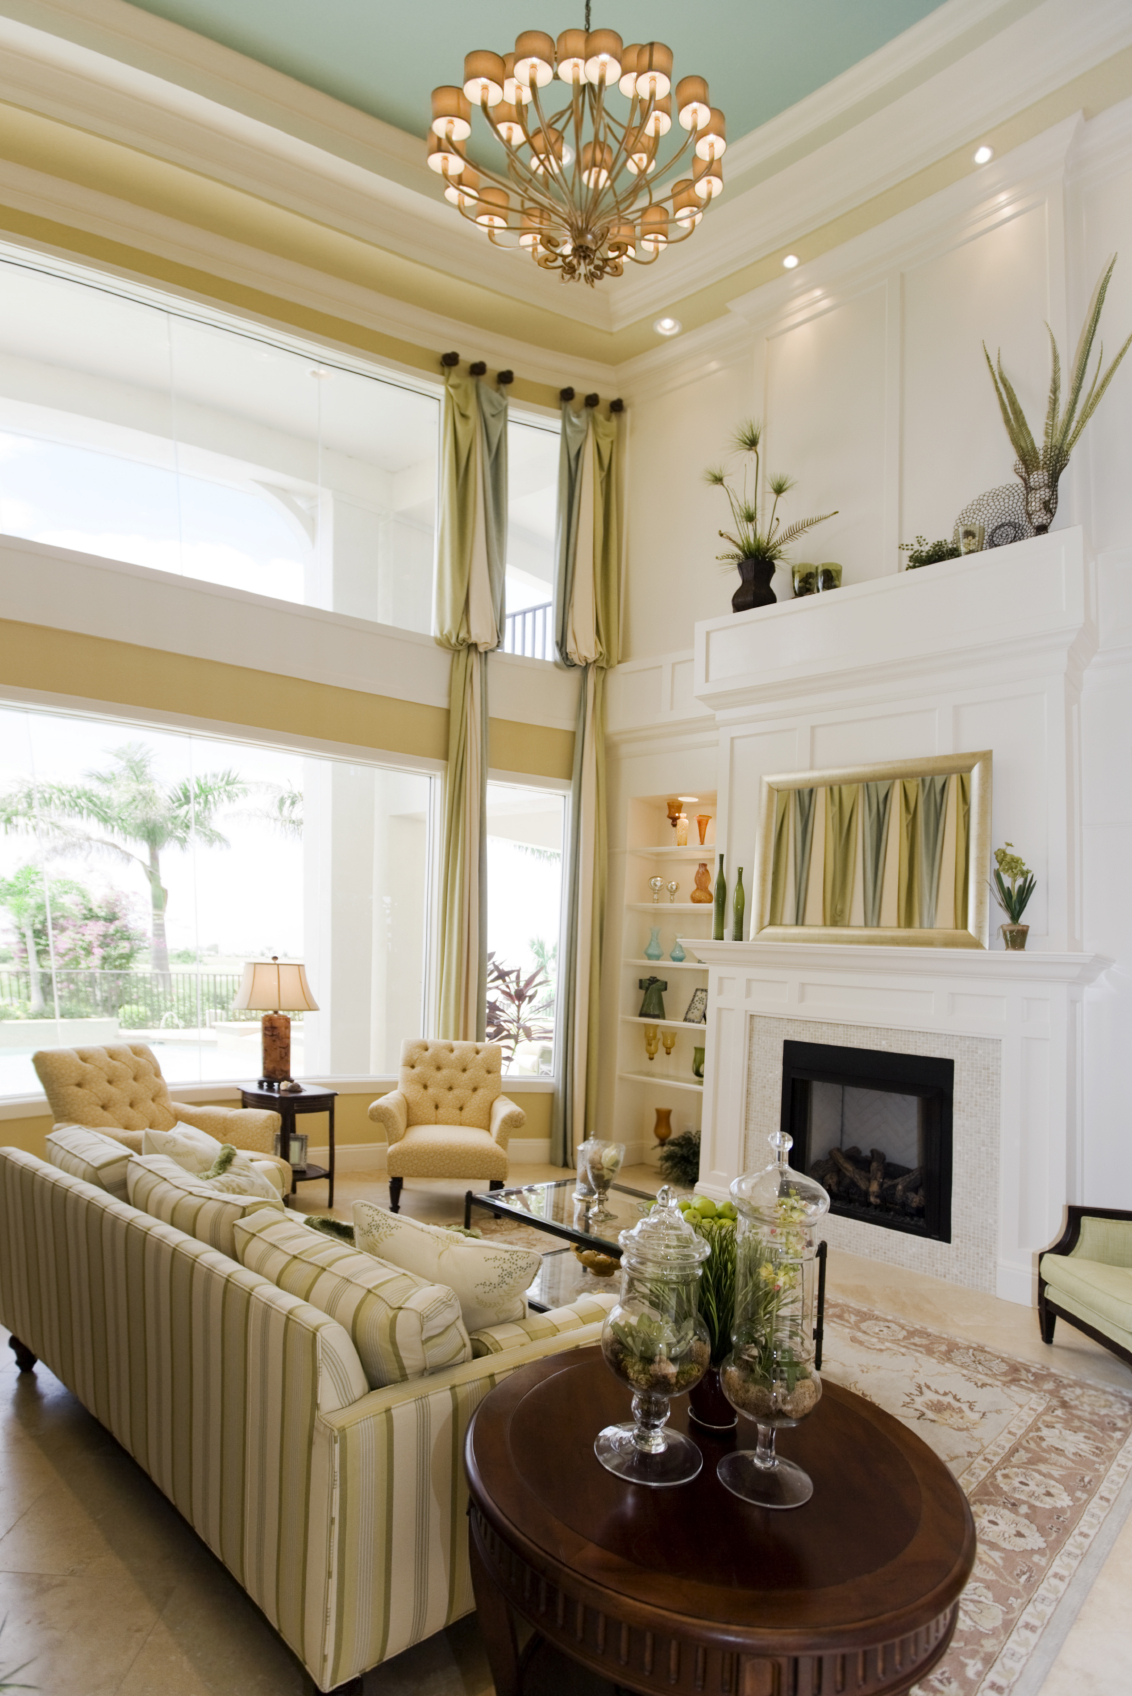 Beautiful Bright Yellow And White Color Scheme Of This Living Room Helps Natural  Light Illuminate The Large